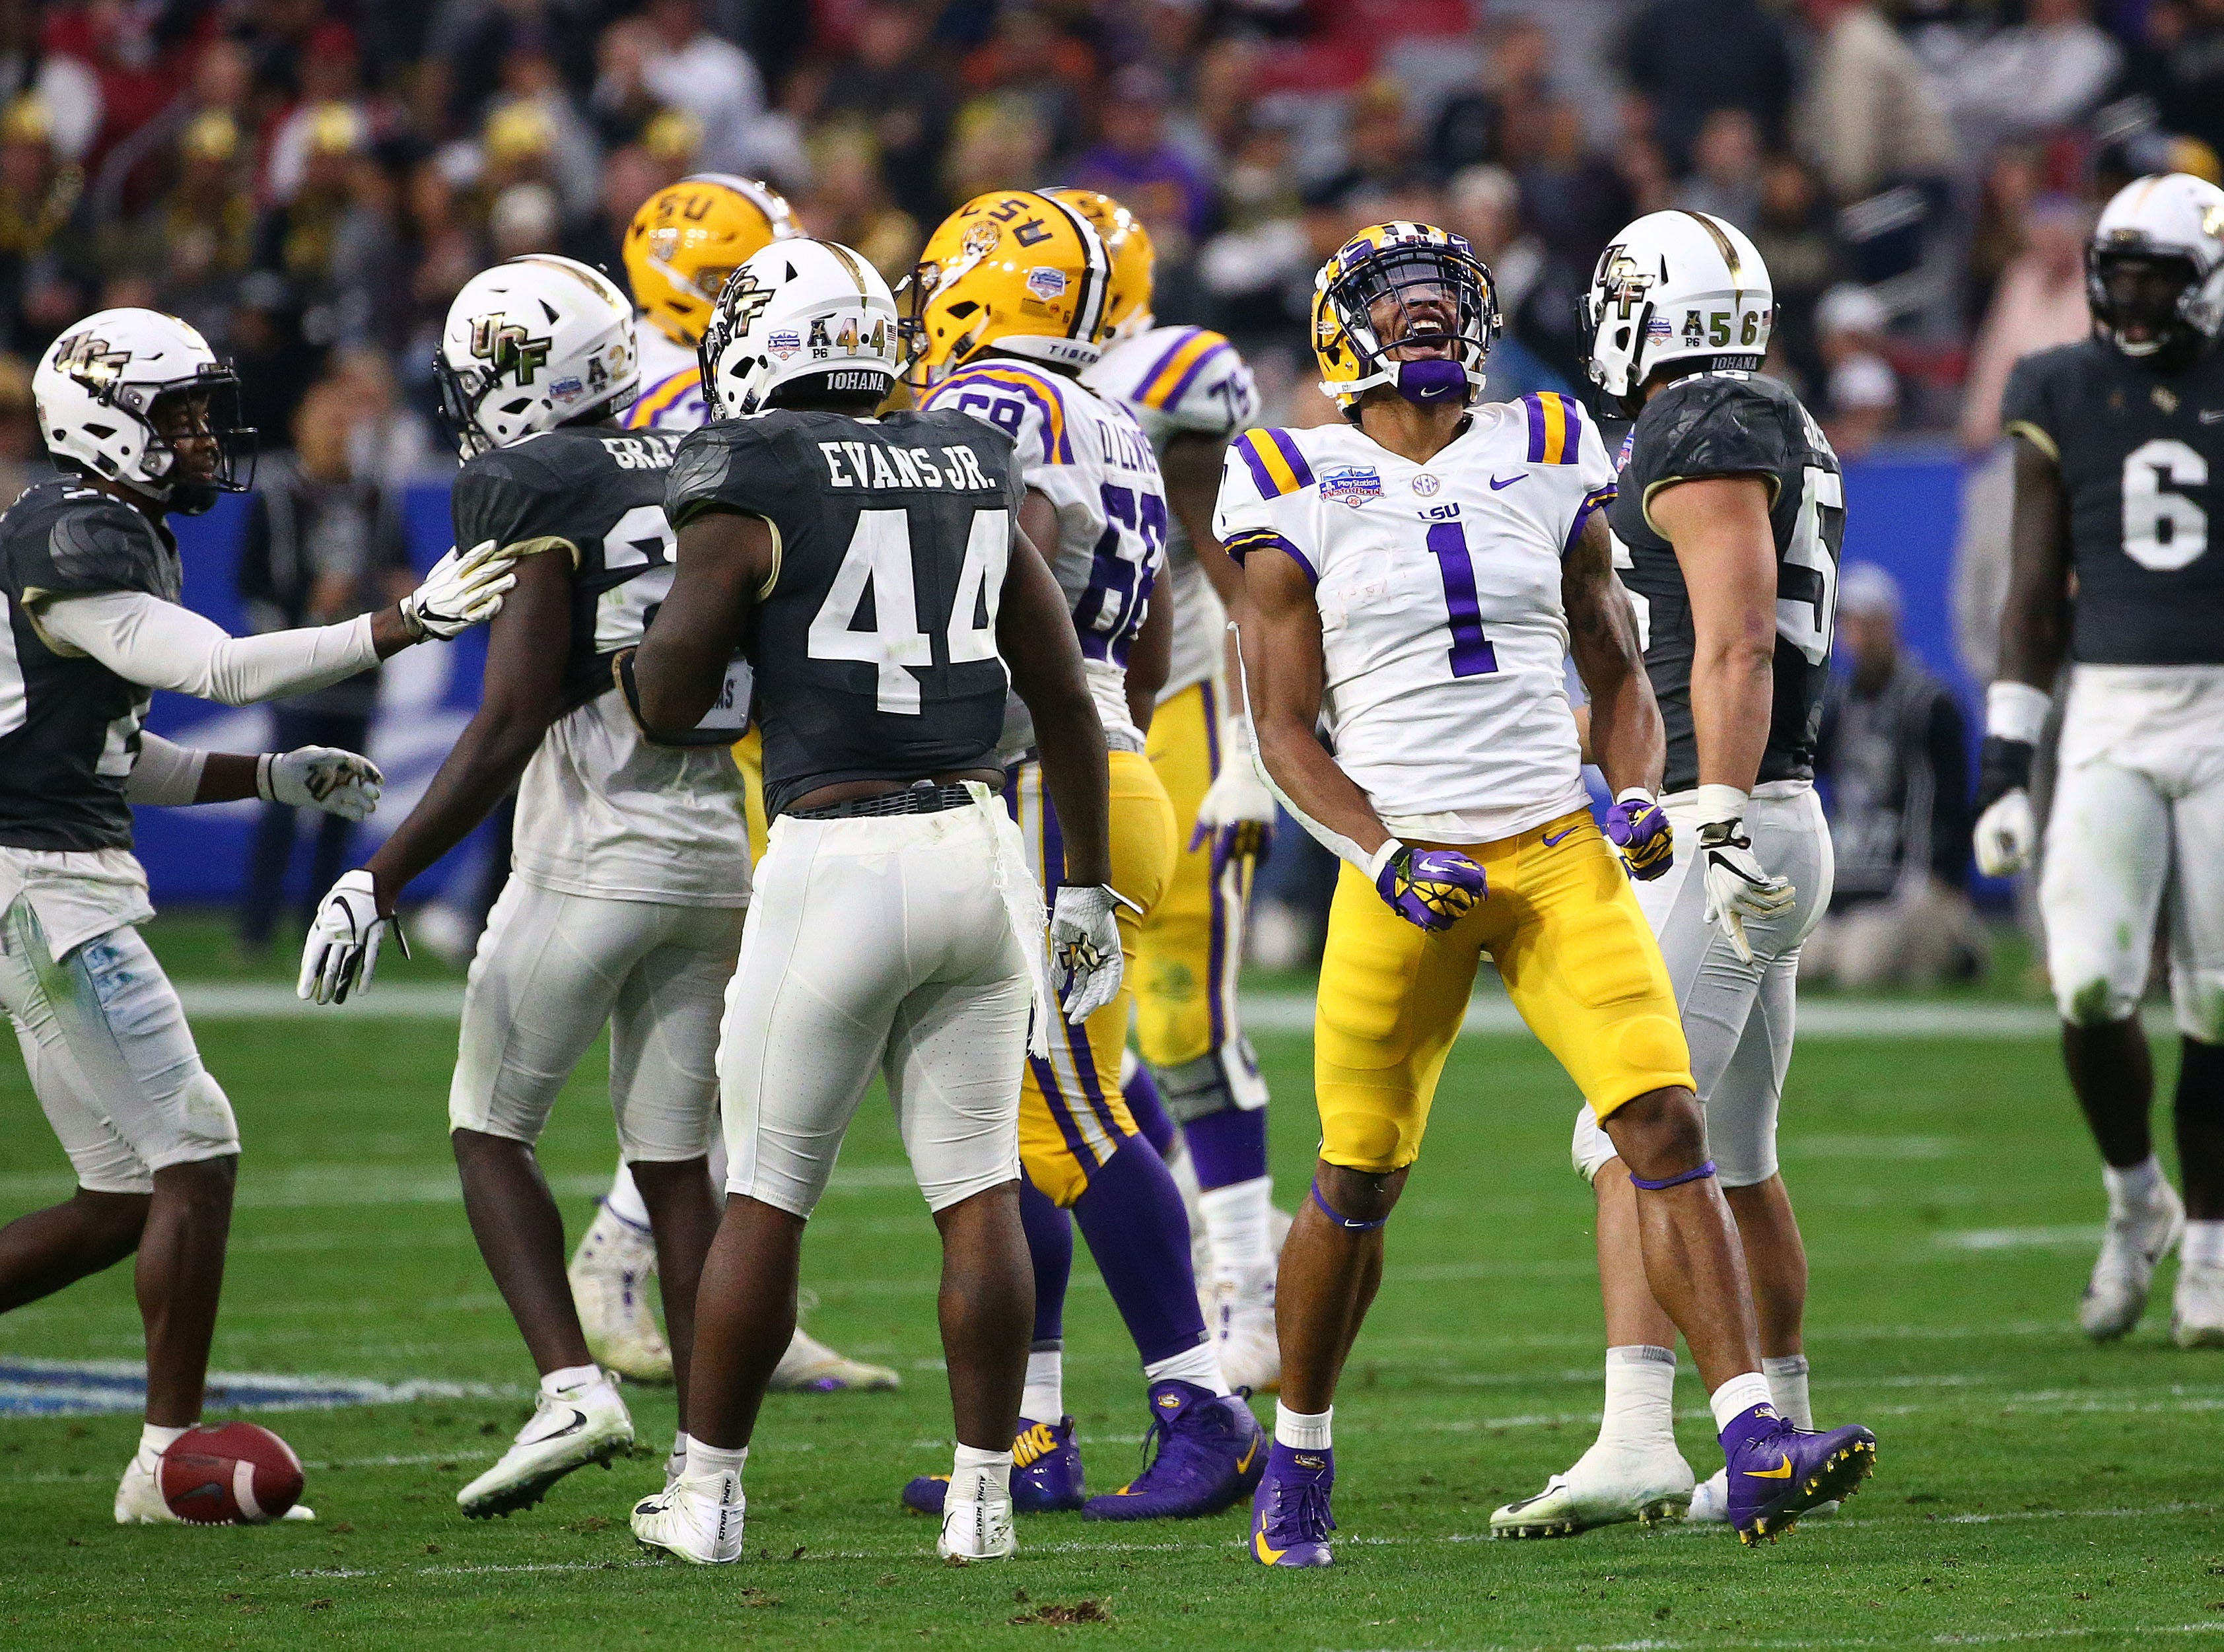 LSU Tigers wide receiver Ja'Marr Chase (1) reacts after making a first down against the UCF Knight in the first half at the Fiesta Bowl on Jan. 1 at State Farm Stadium.